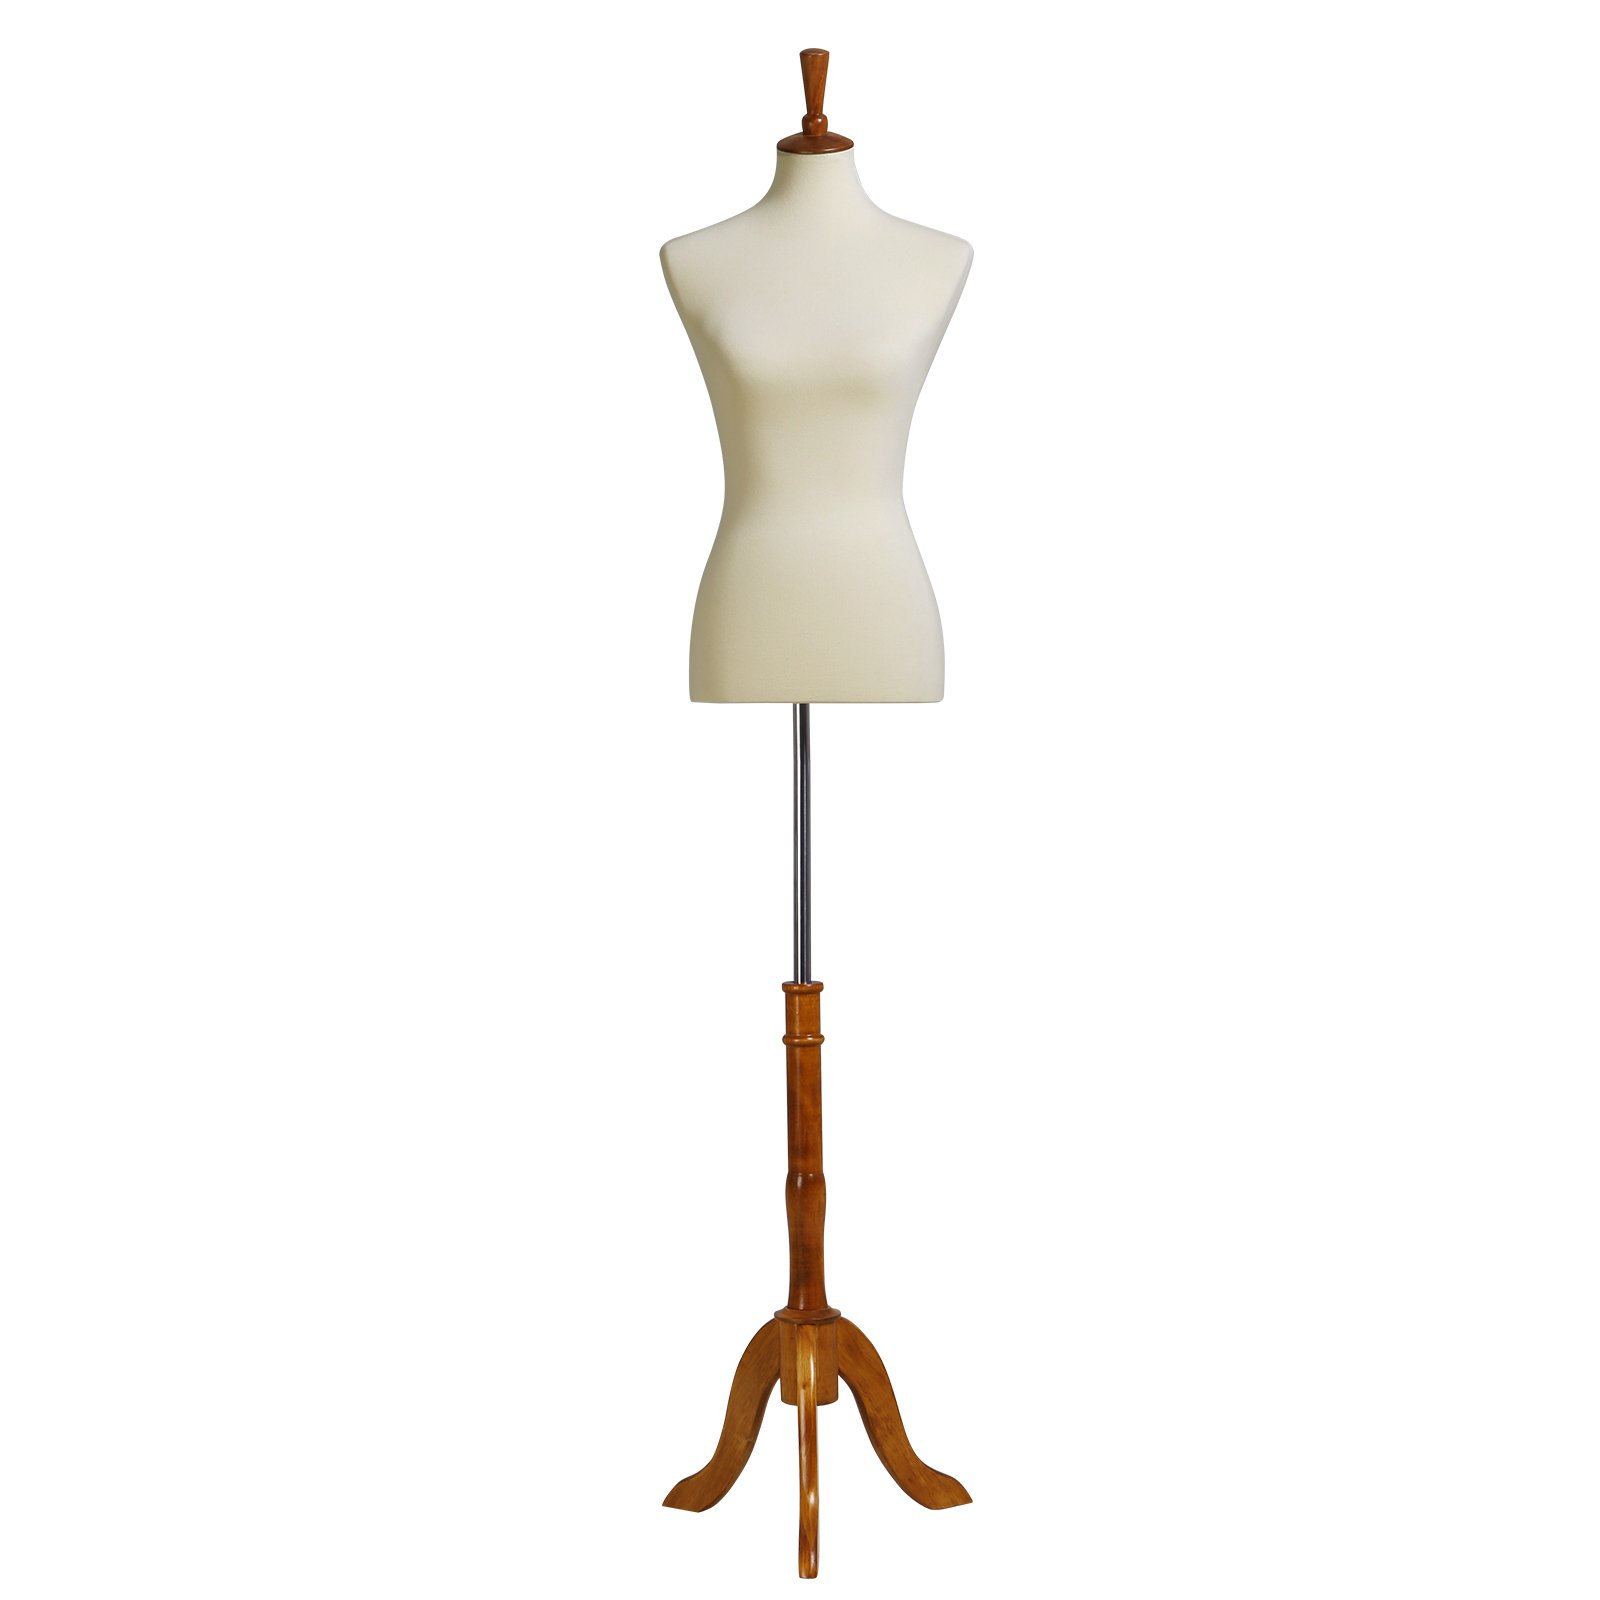 SONGMICS Female Mannequin Torso Body Form with Adjustable Tripod Stand, Medium Size 6-8, 34'' 26'' 35'', for Clothing Dress Jewelry Display Photography Beige UMDF01BE by SONGMICS